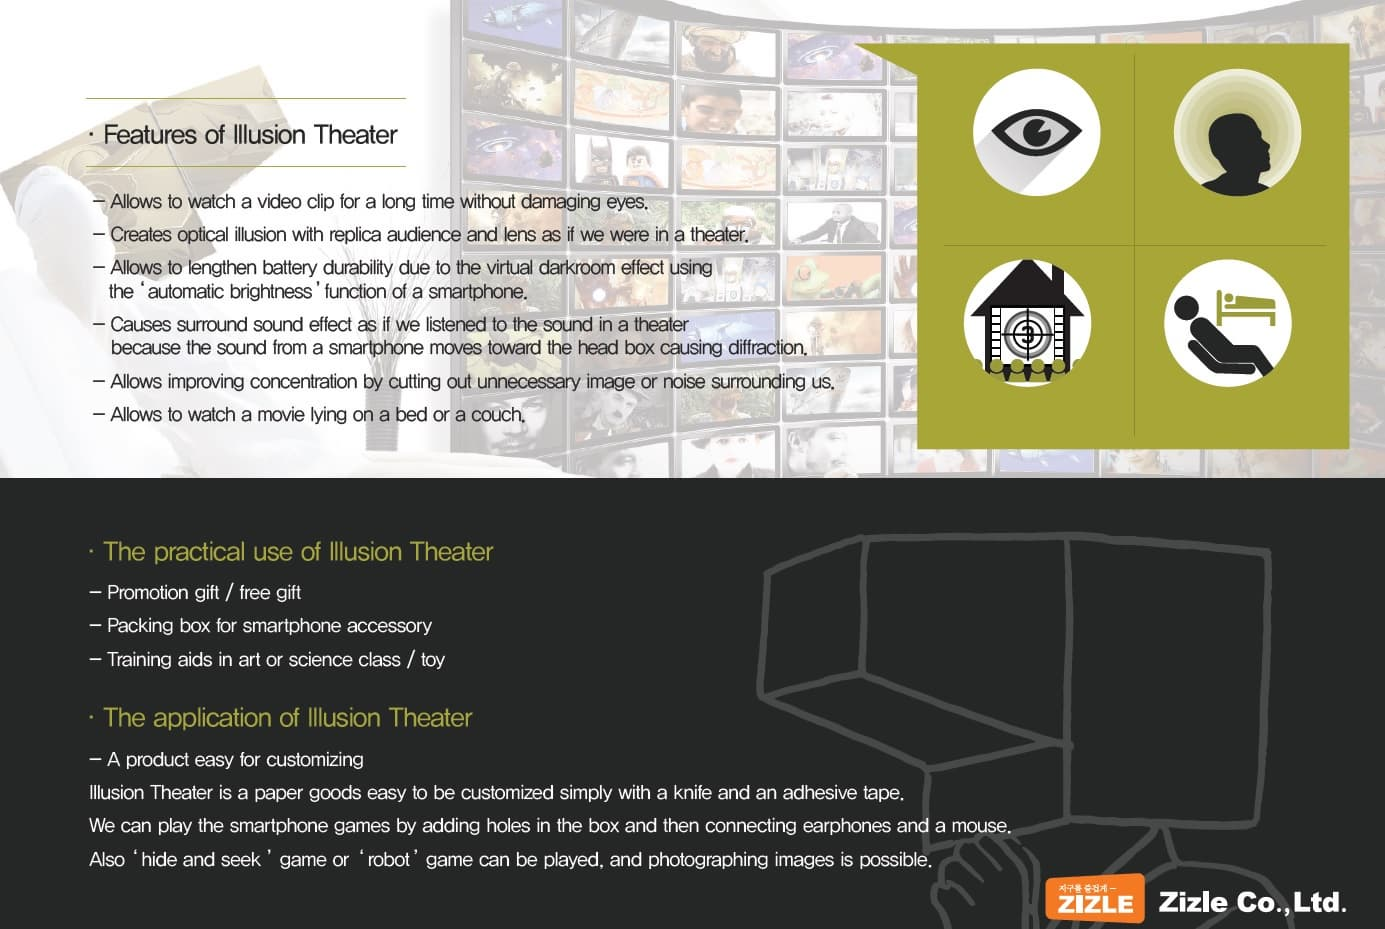 Illusion Theater cardboard movie theater